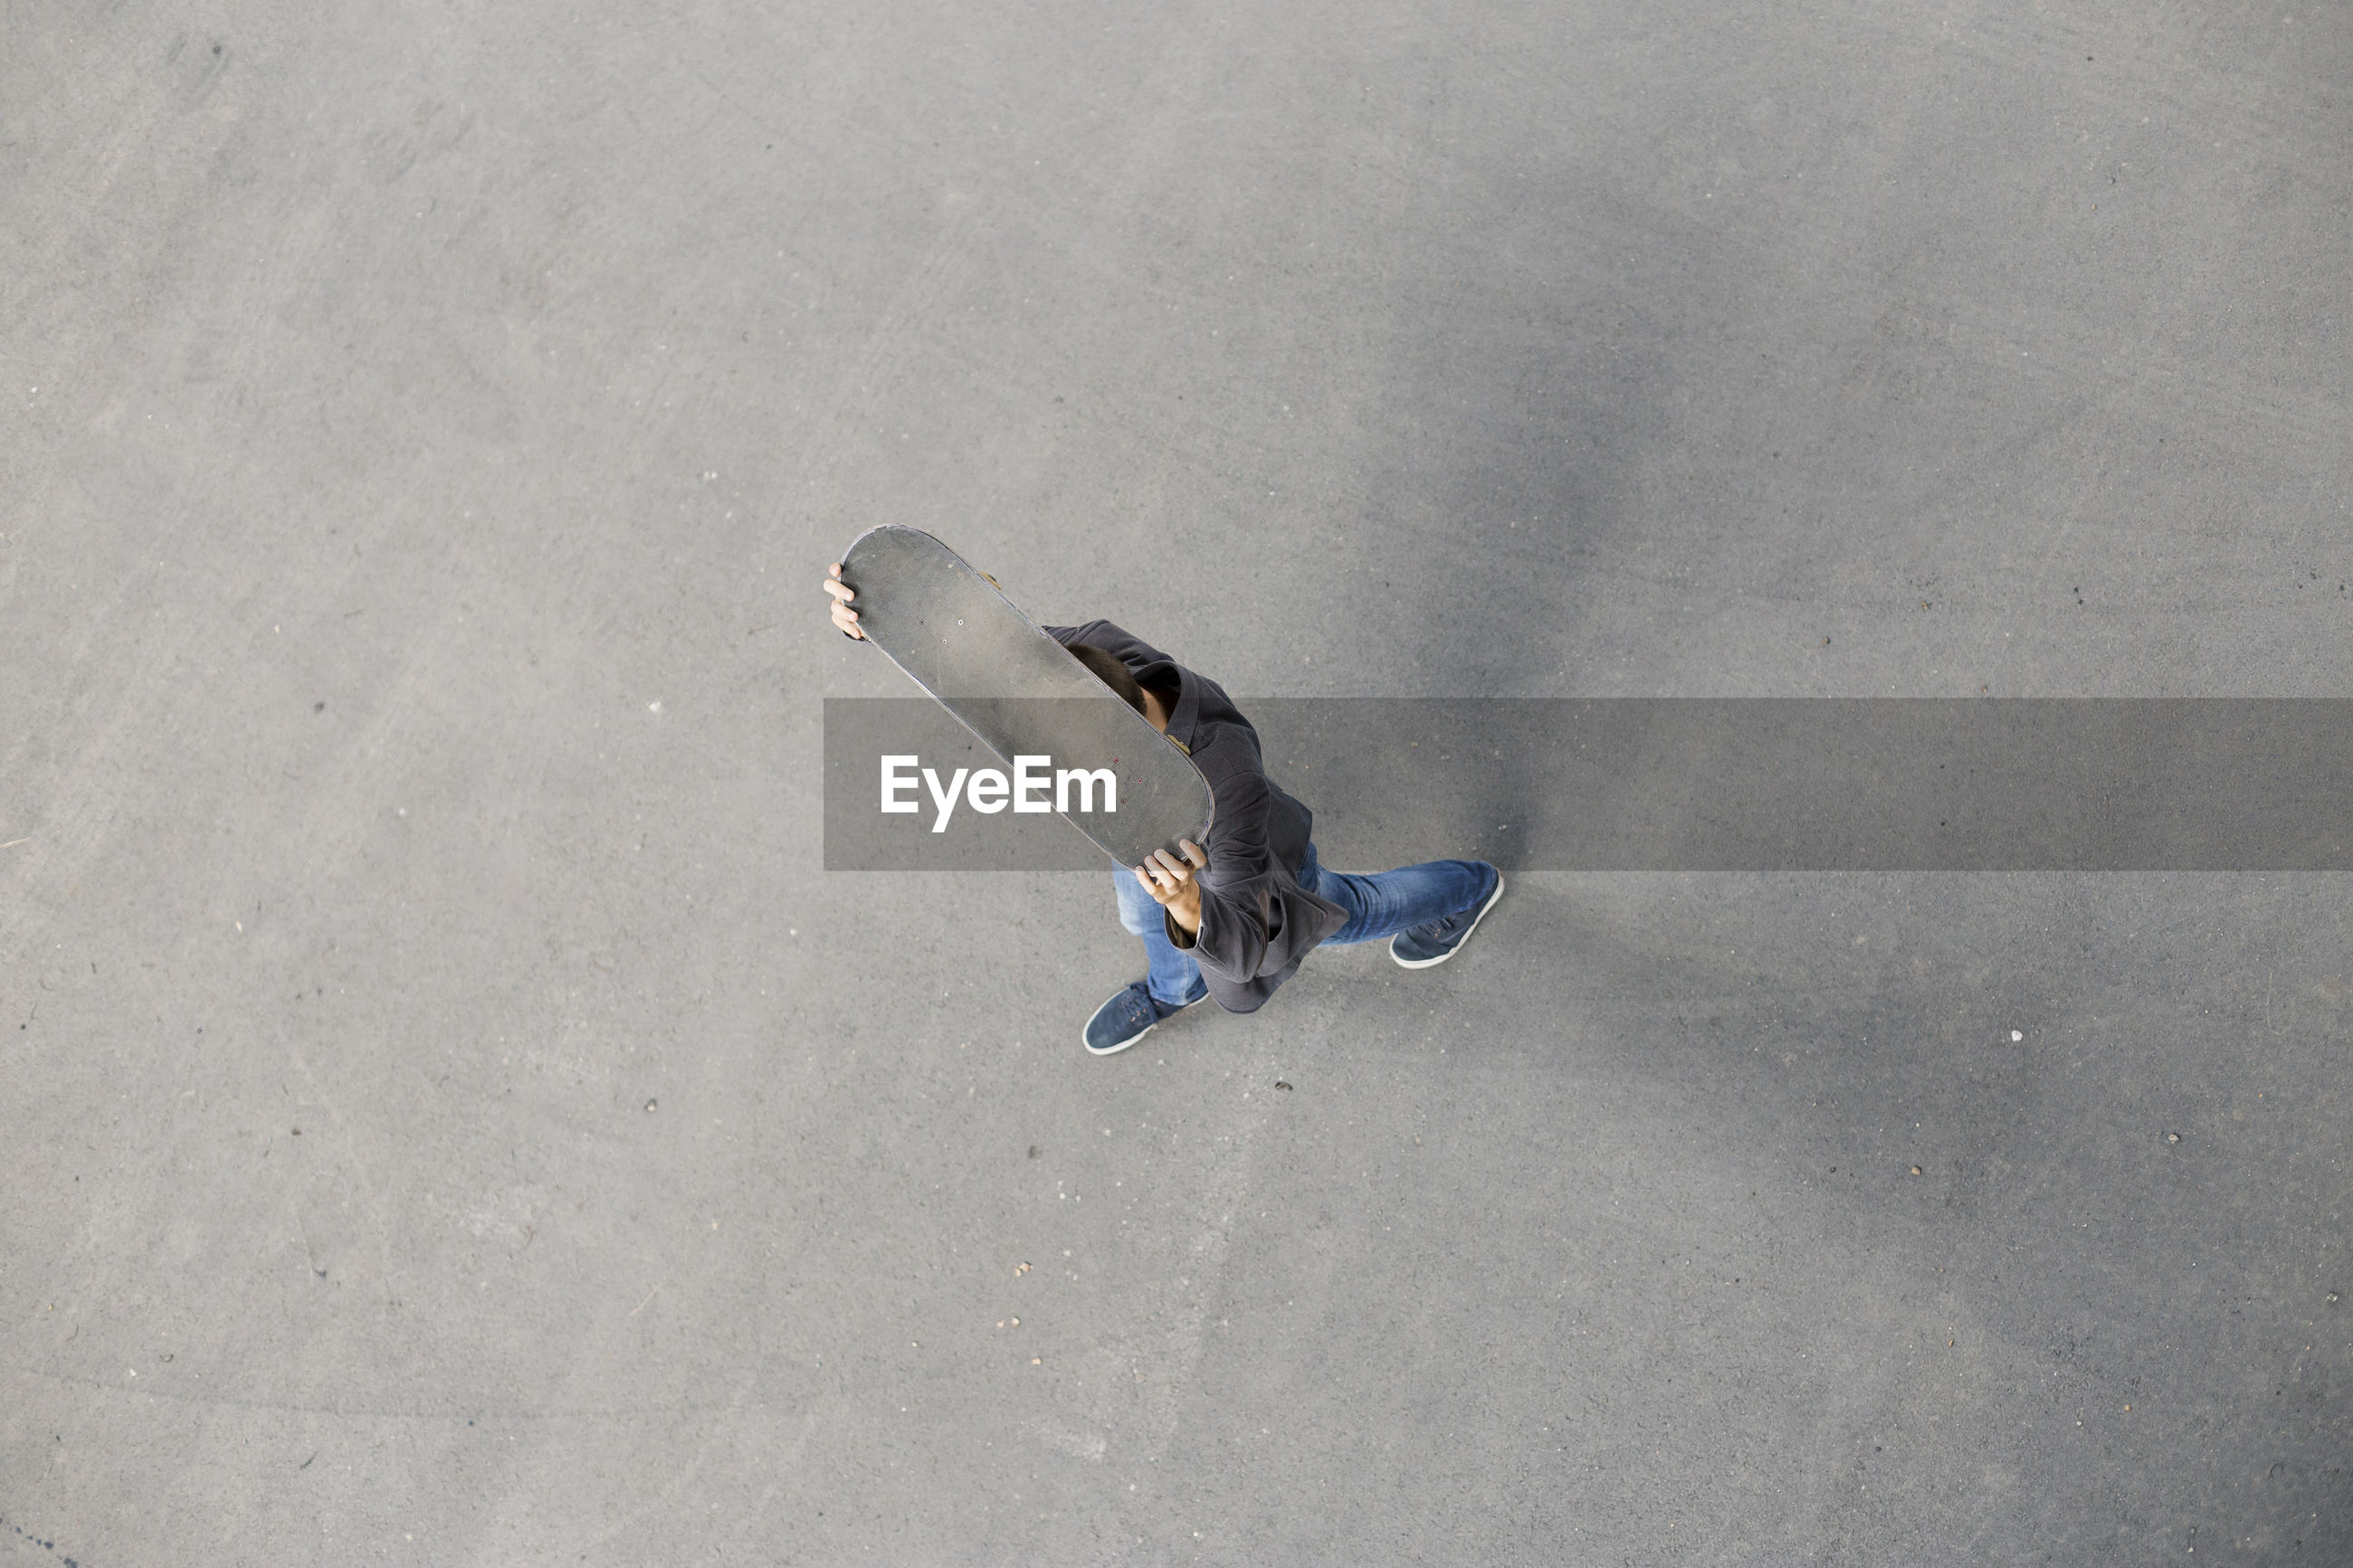 High angle view of man with skateboard walking on road